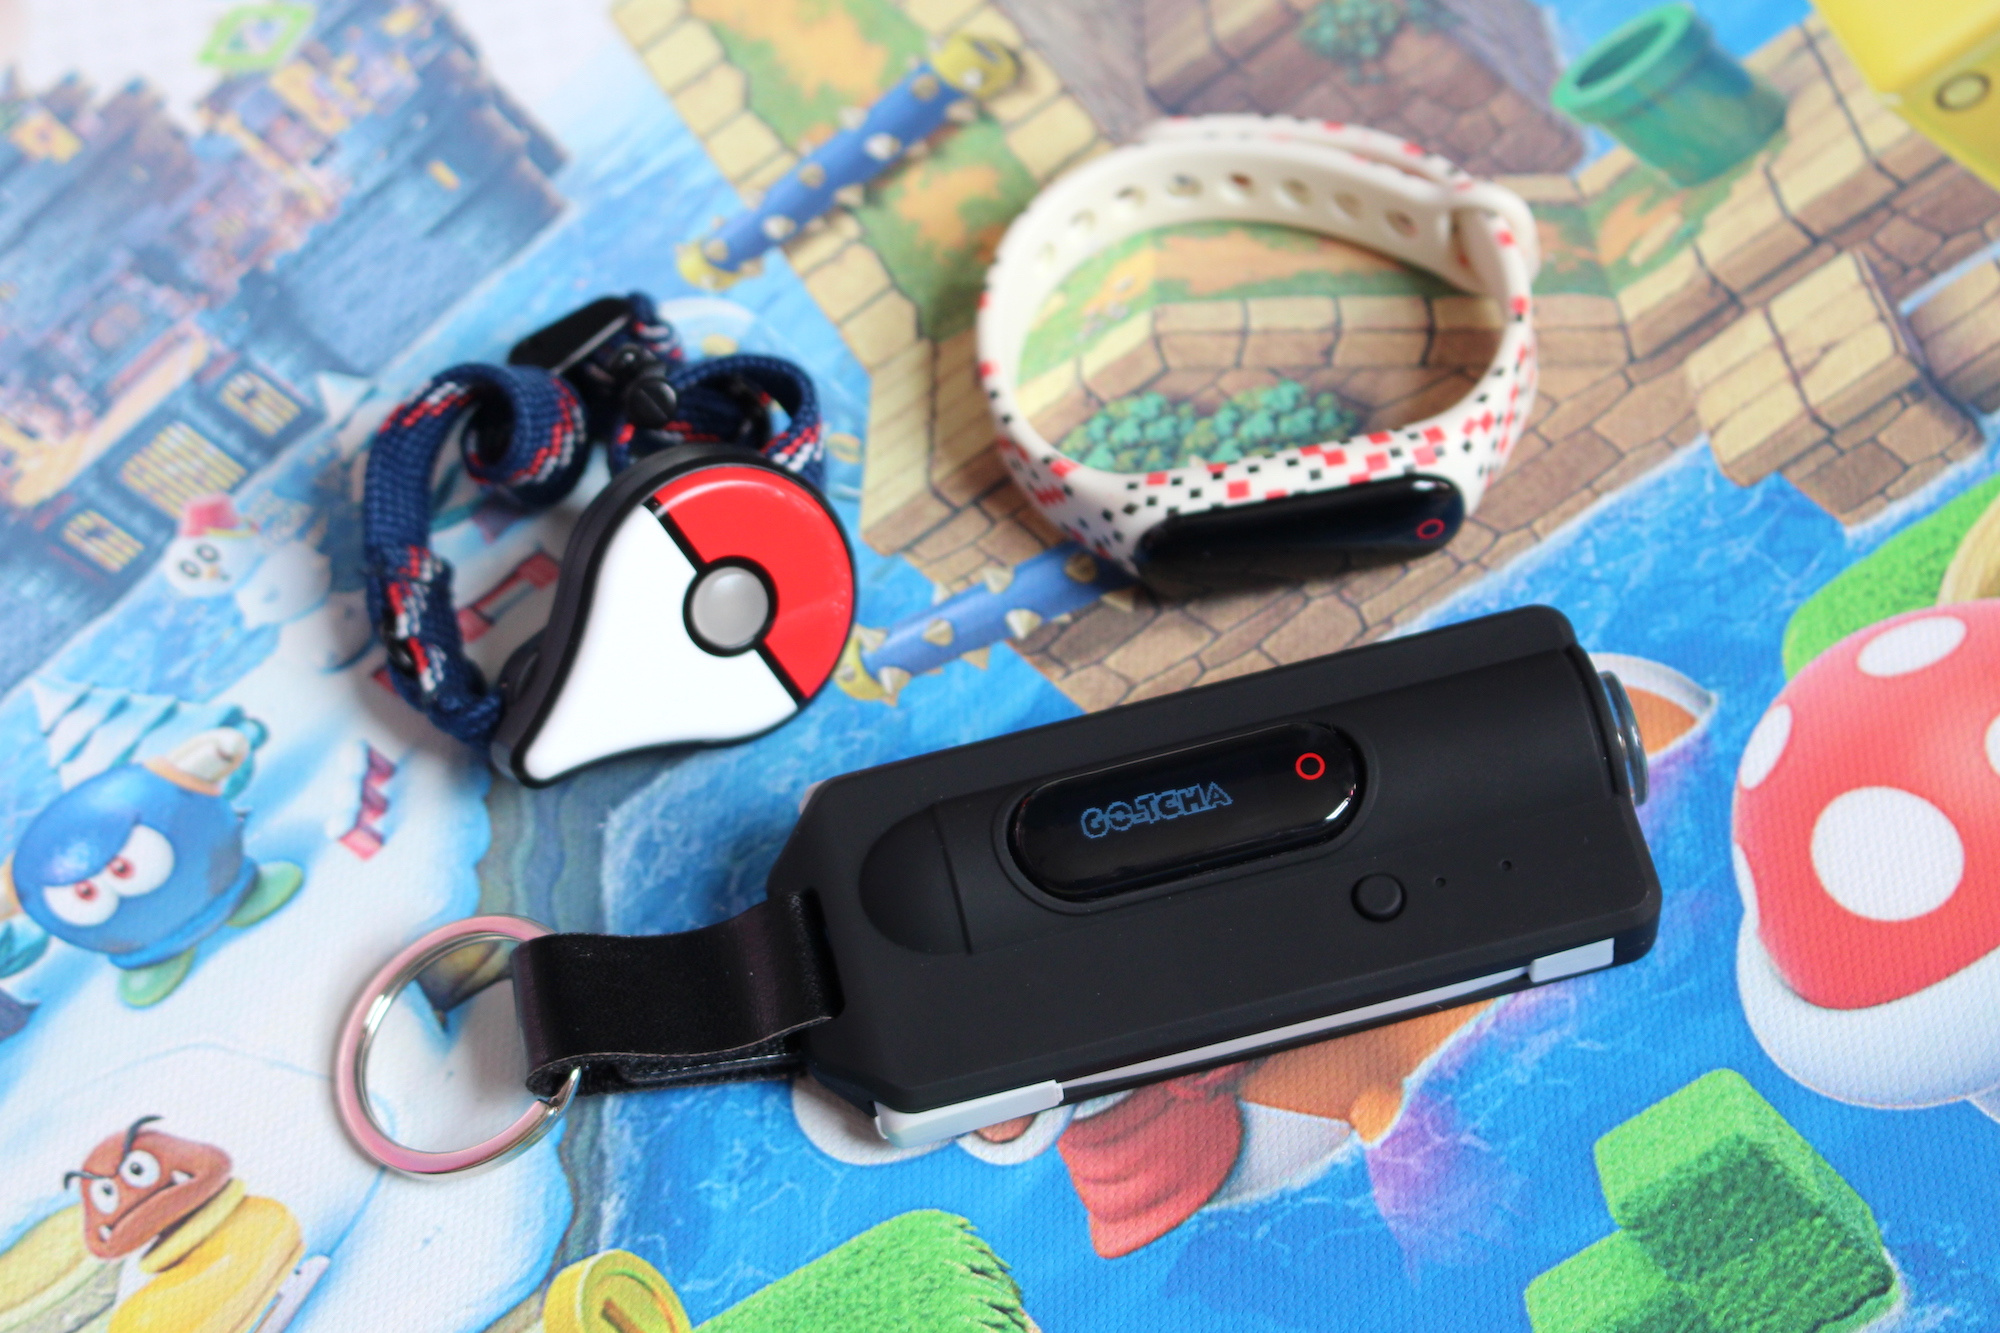 Hardware Review: Go-tcha Ranger: A Worthy Upgrade For The